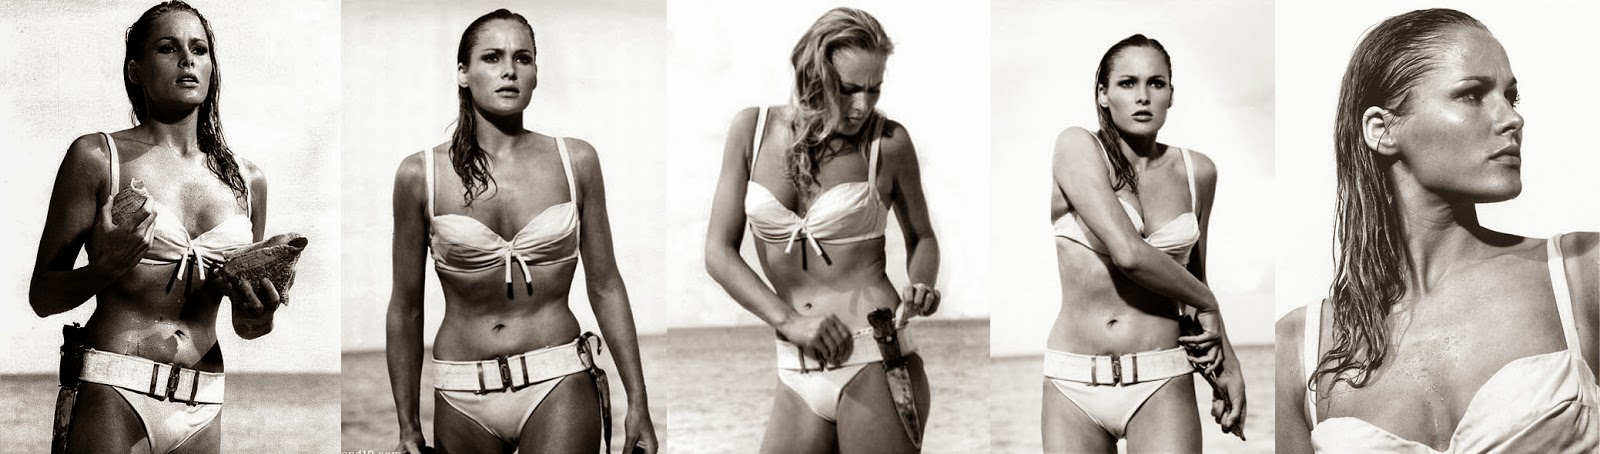 ursula andress bikini beach james bond